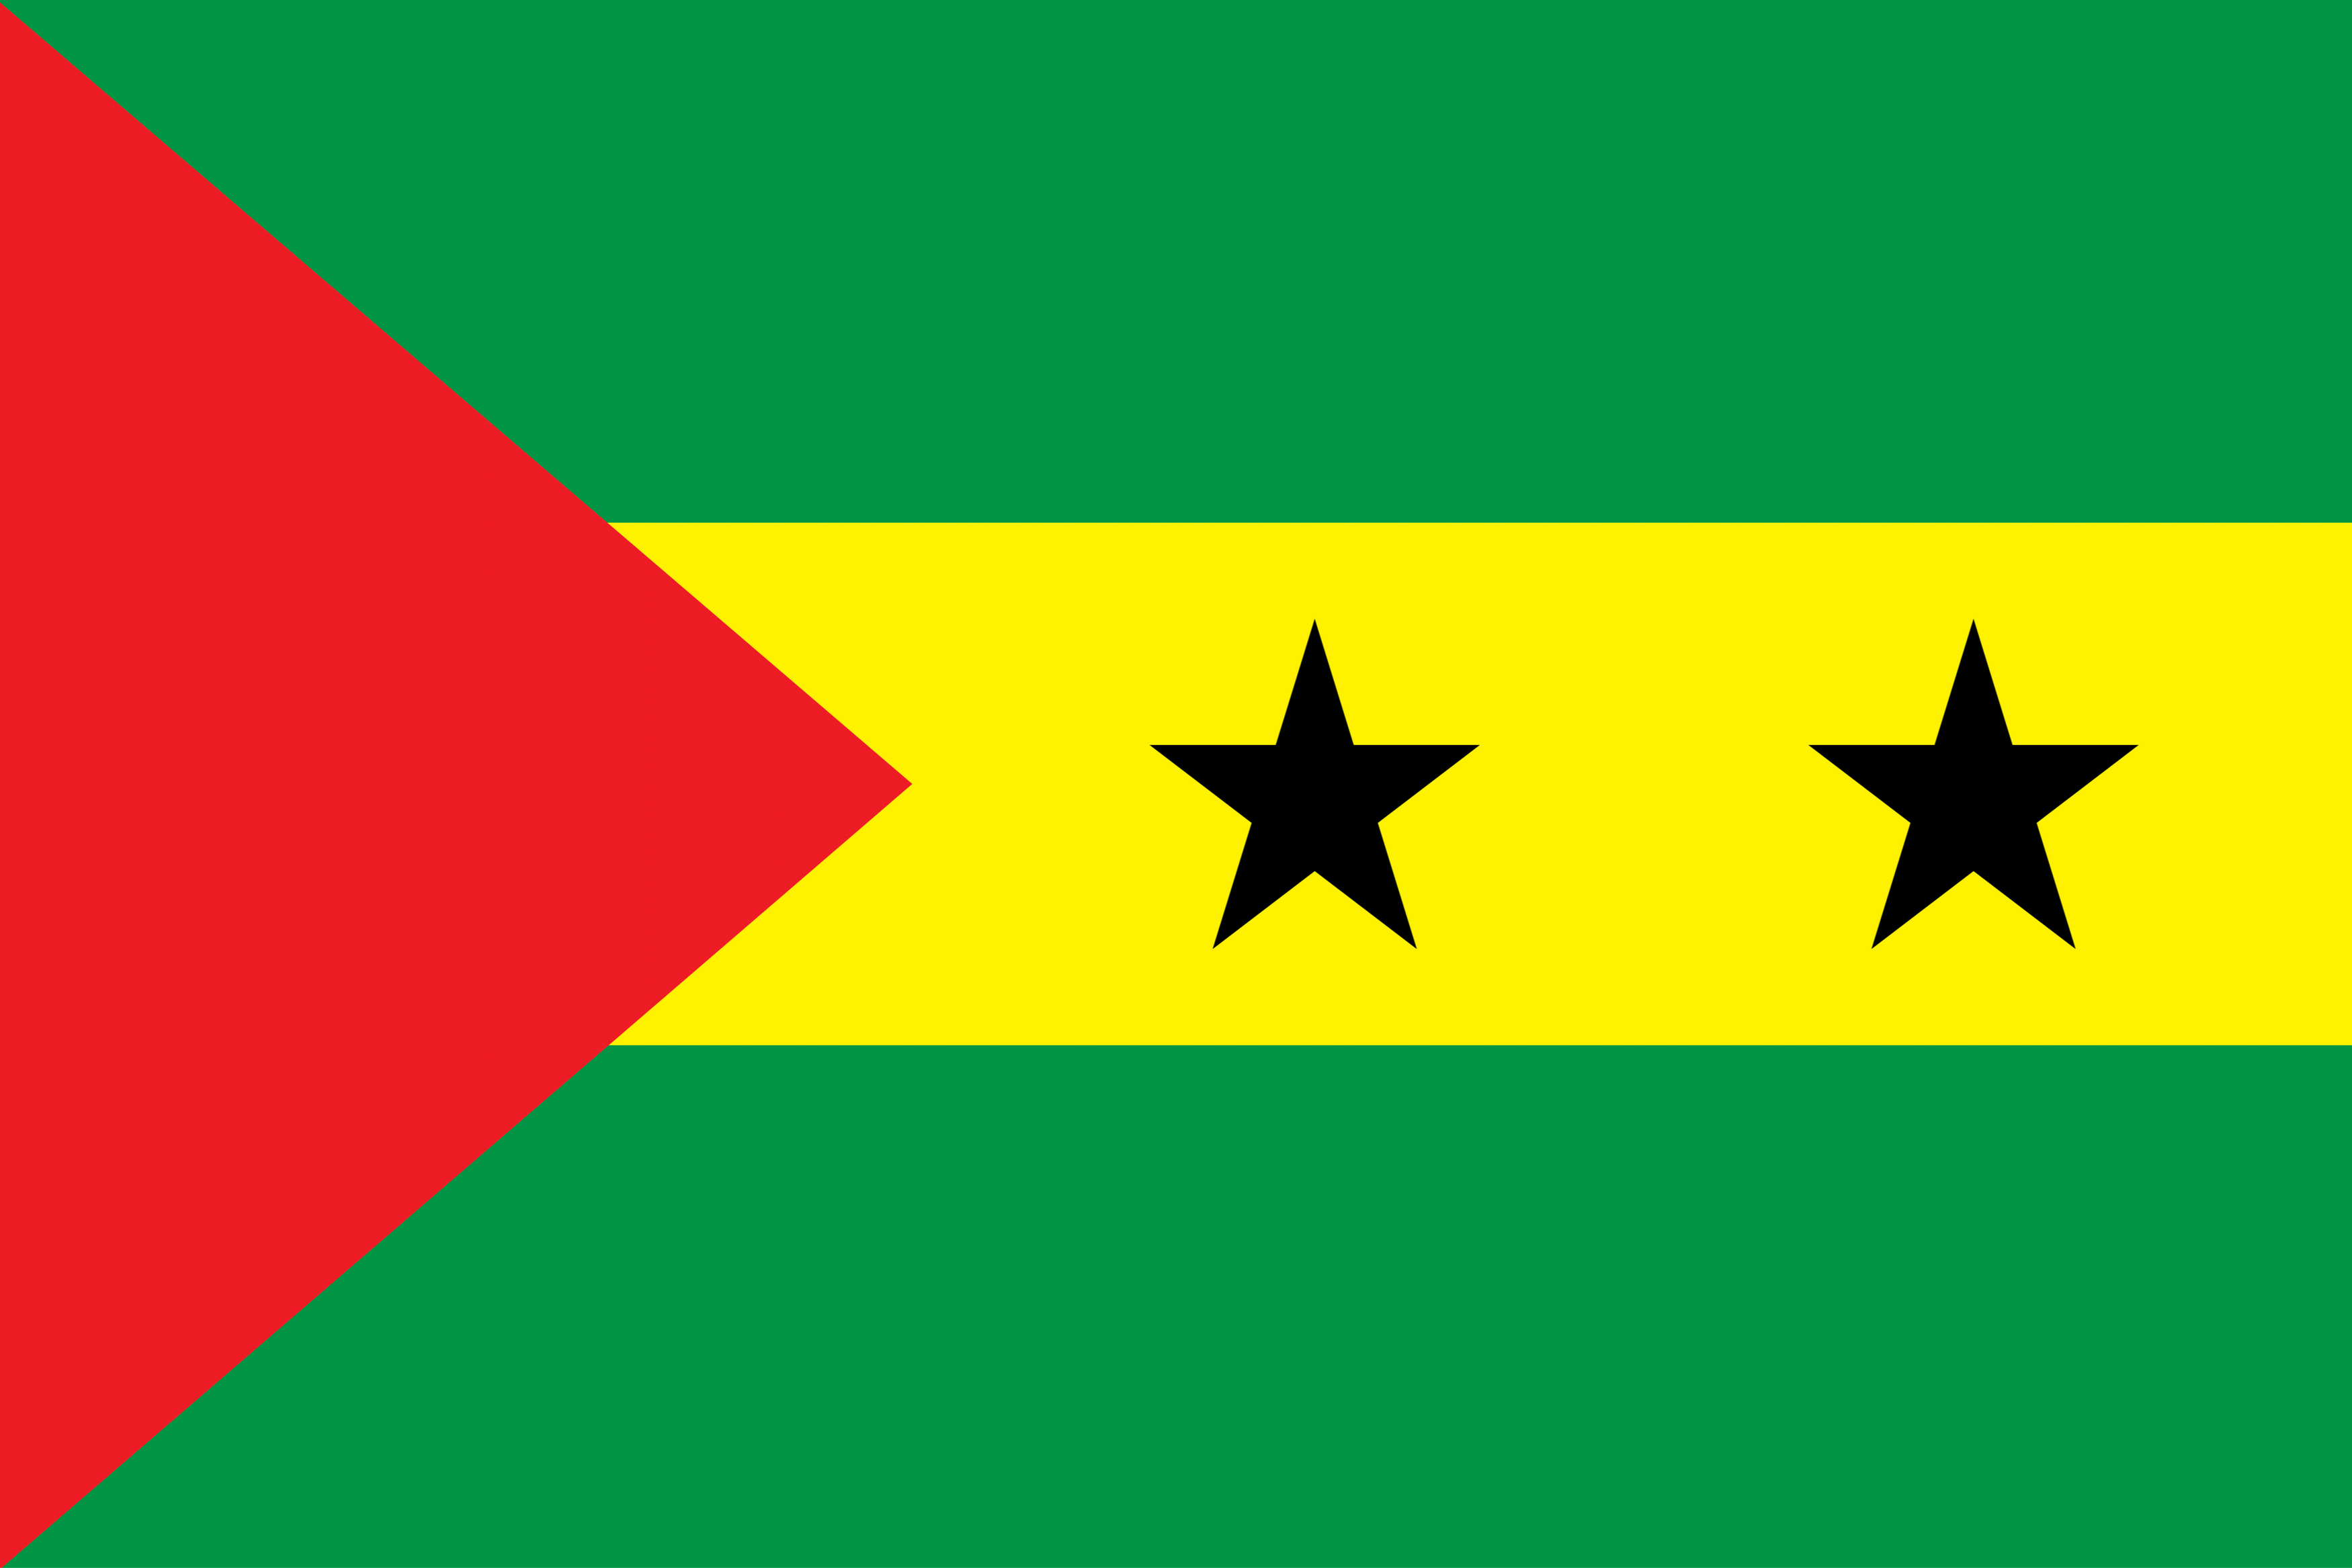 The two black stars of the flag represent the two main islands (Sao Tome and Principe​) of the nation.